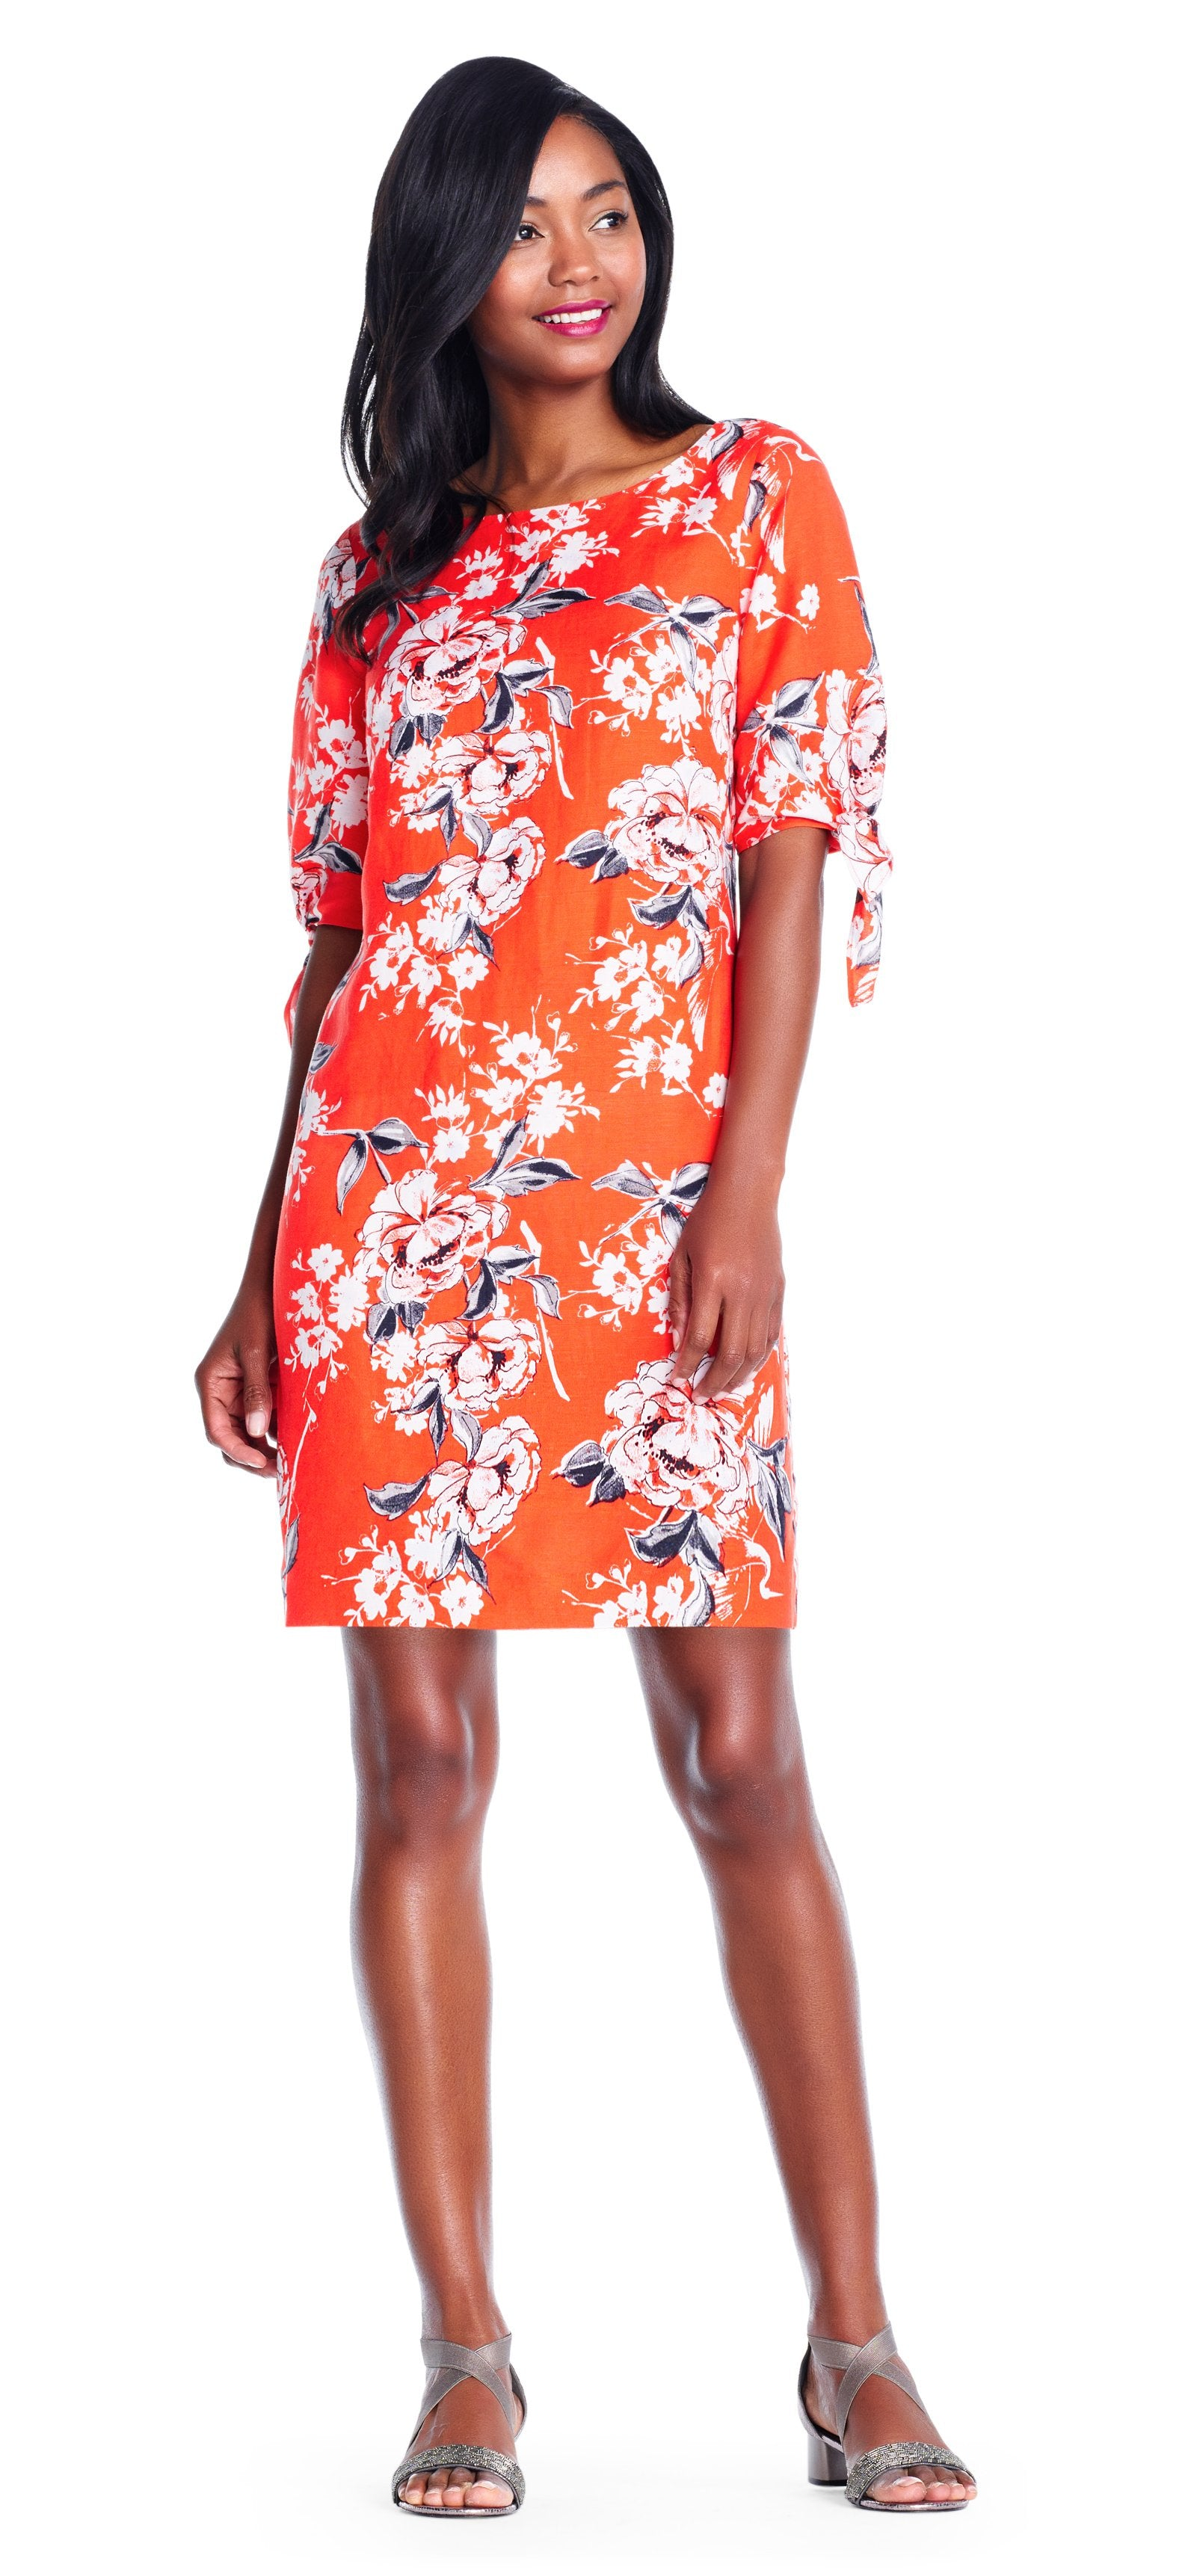 Adrianna Papell - AP1D102267 Floral Print Sleeves Tie Dress In Orange and Multi-Color